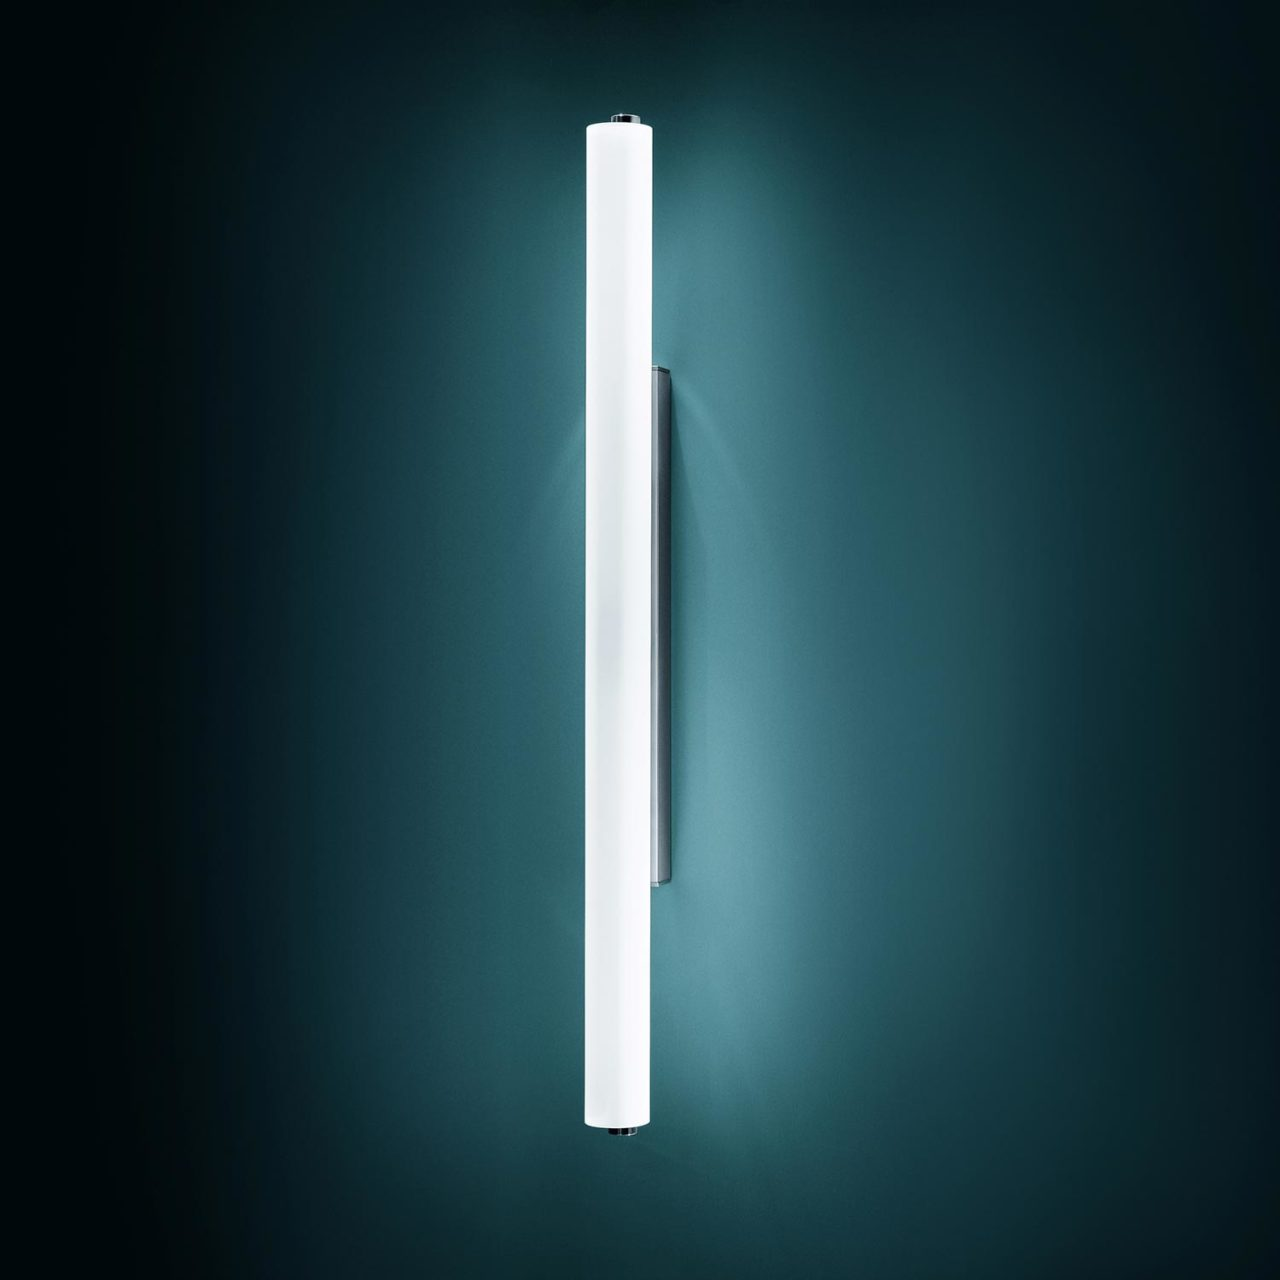 Norma 65 - wall light